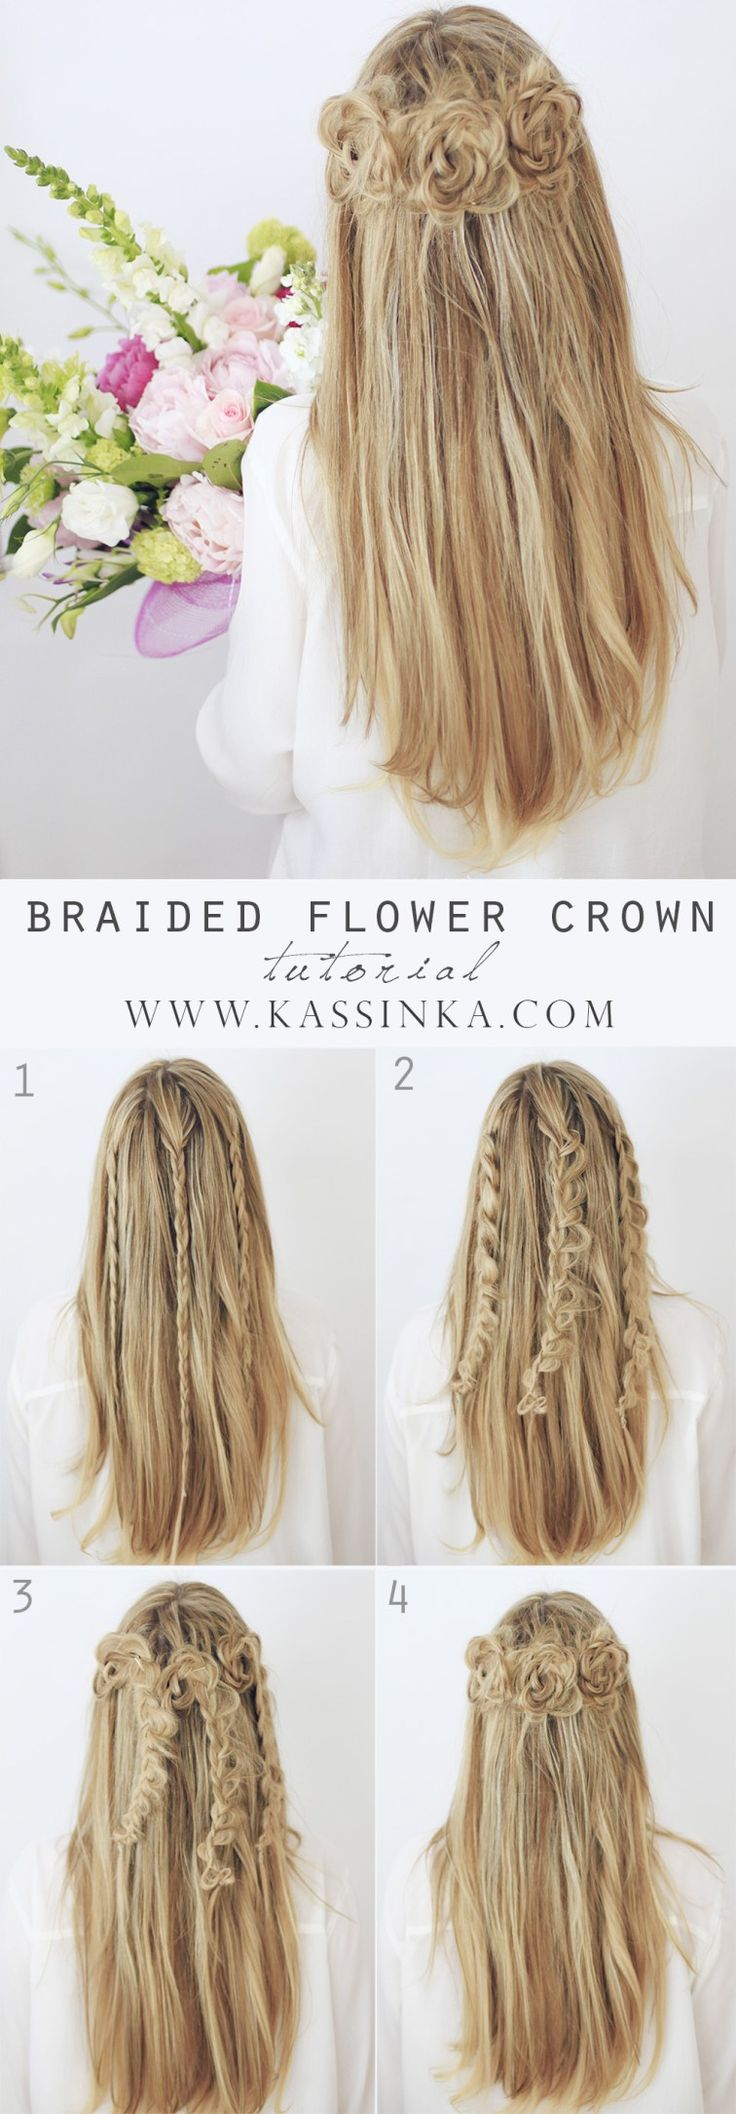 44 best Creative designs images on Pinterest | Hairstyle ideas ...